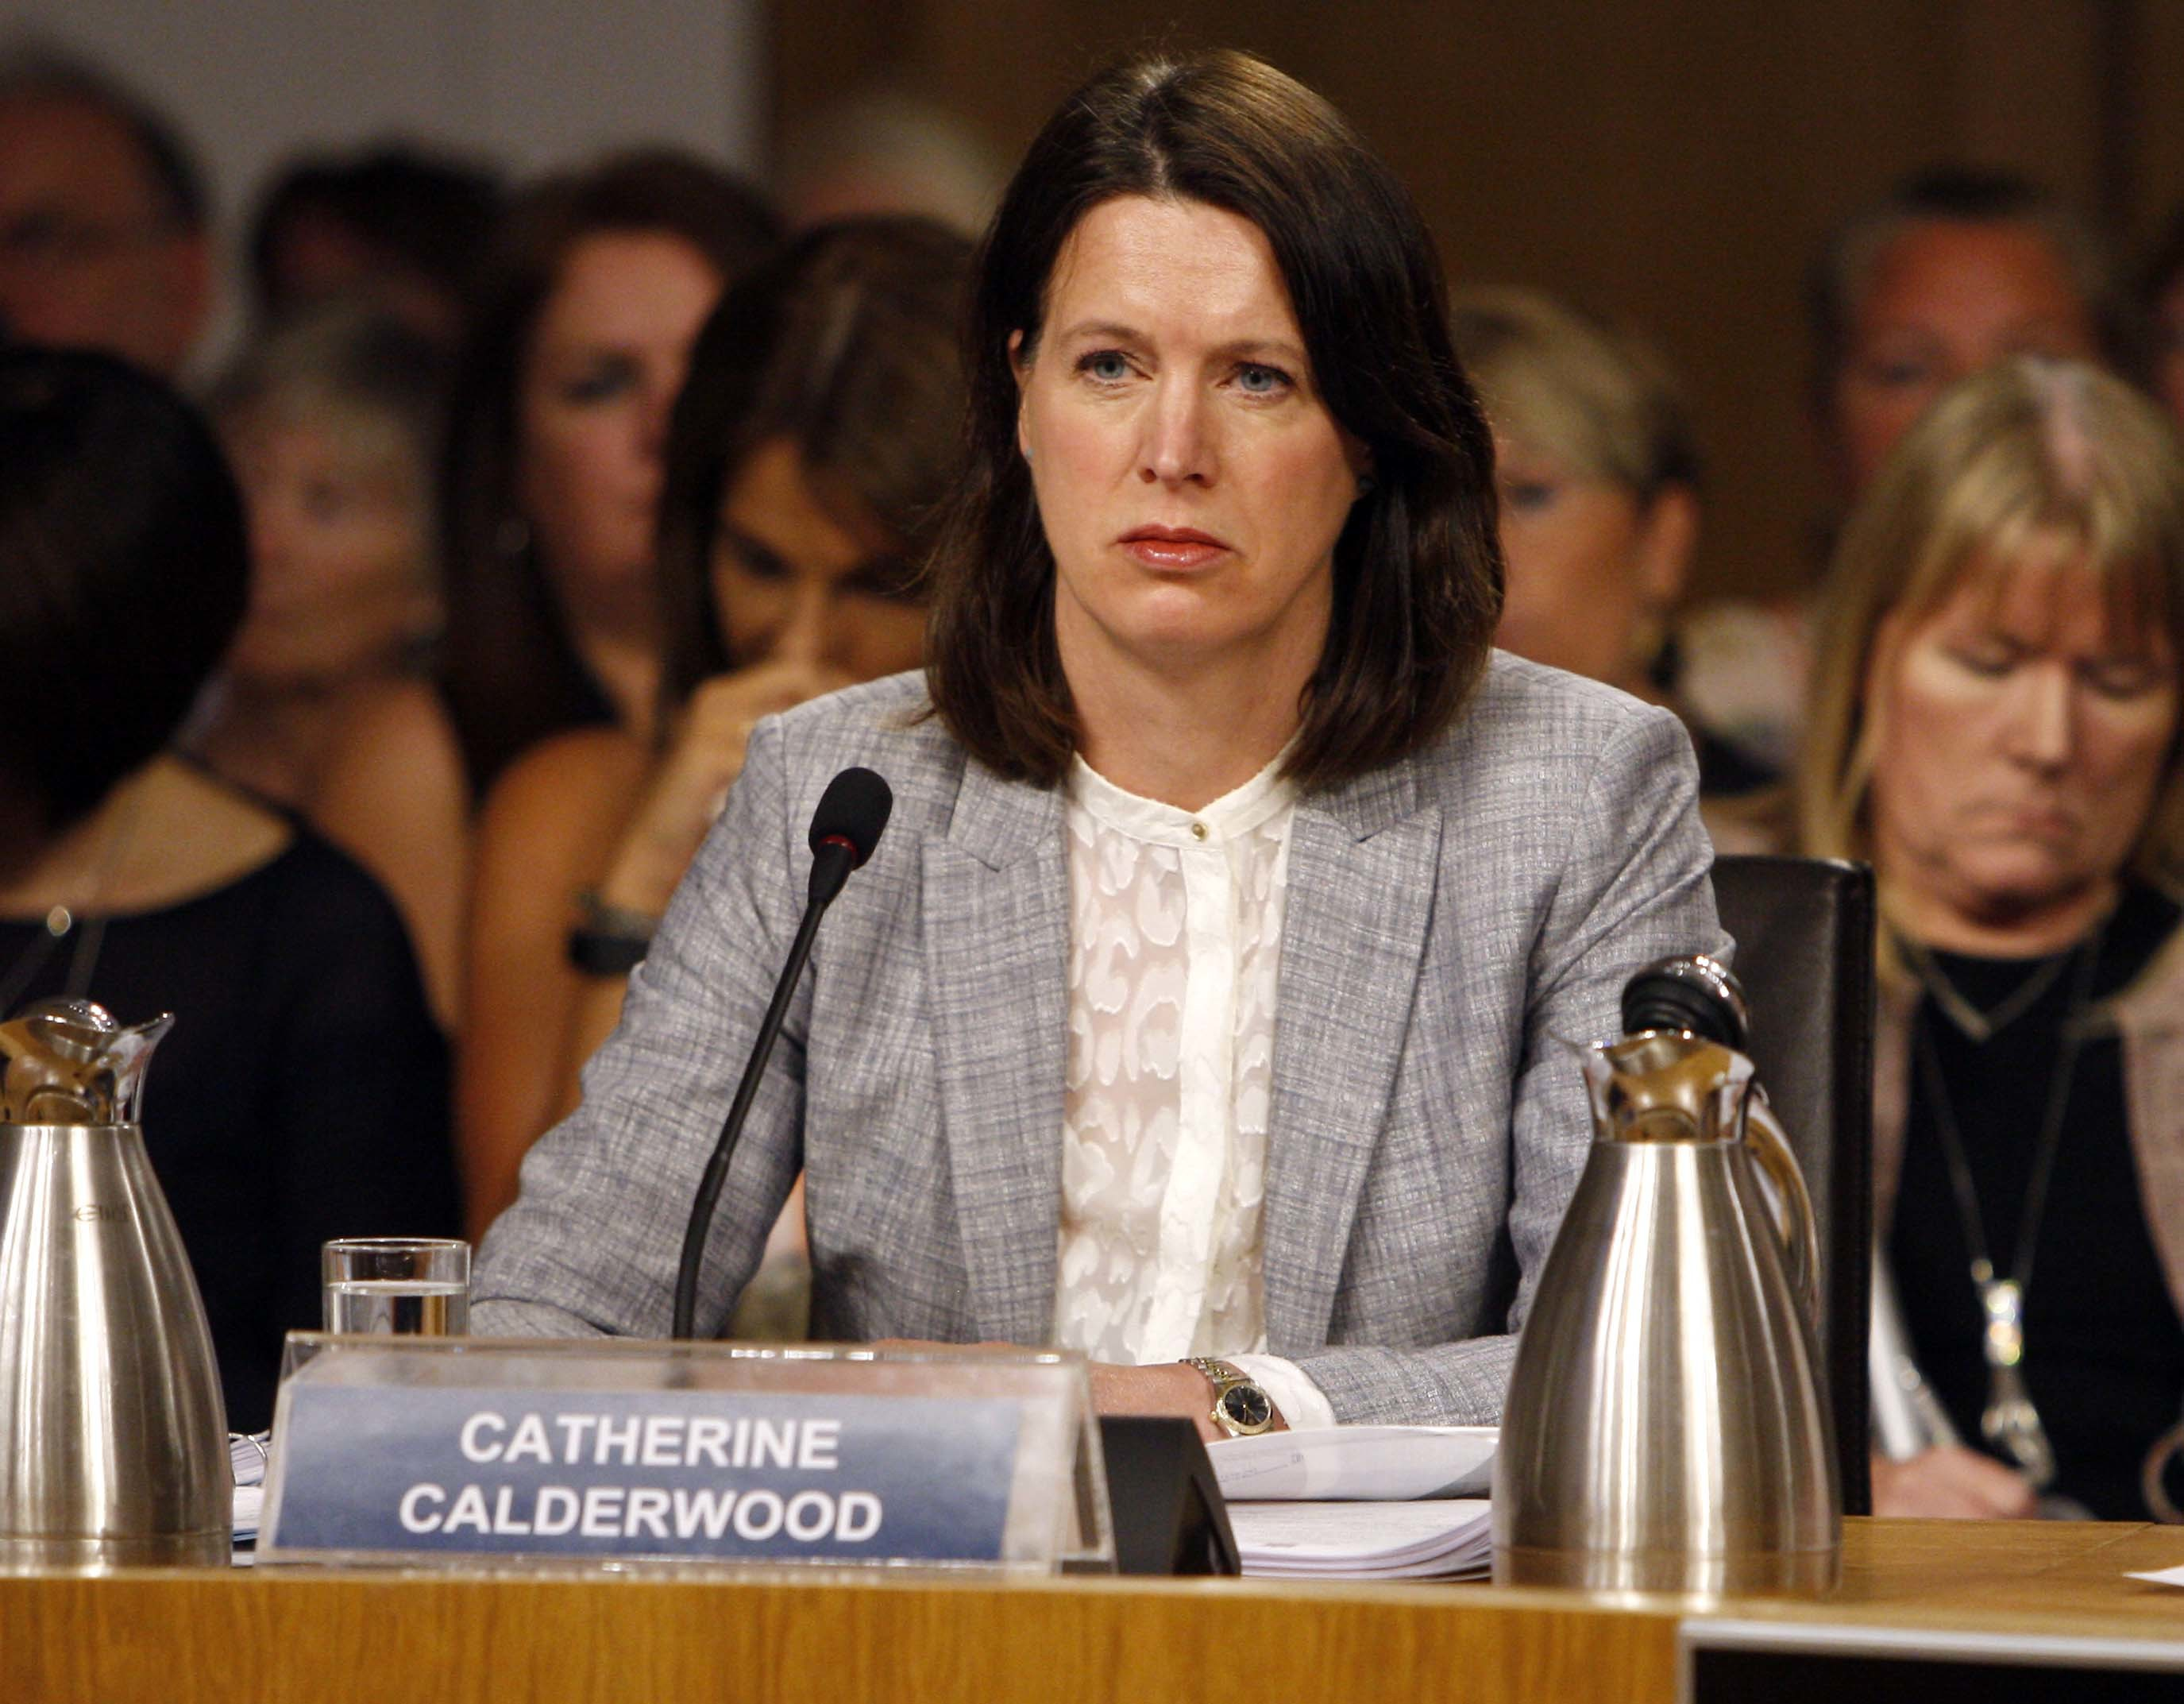 Catherine Calderwood, Chief Medical Officer